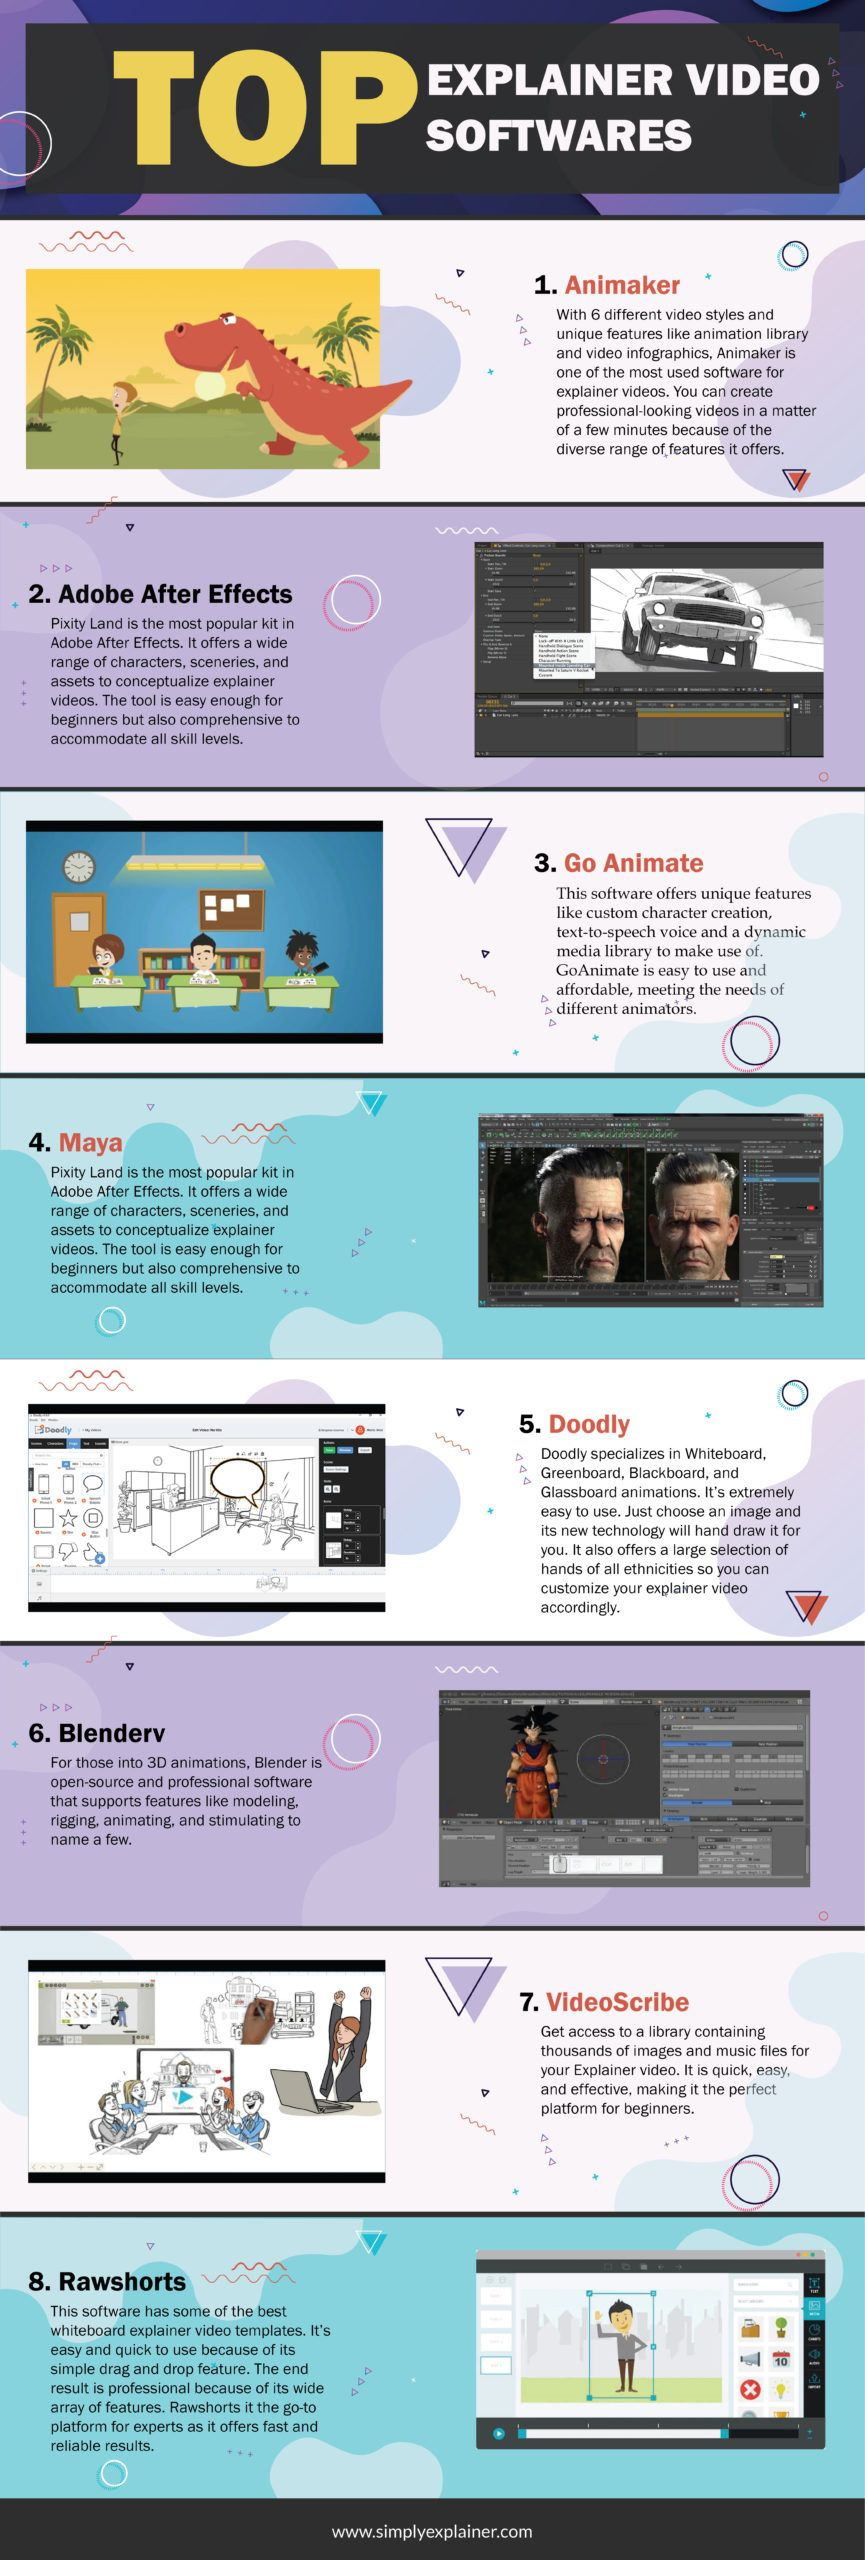 top explainer video softwares (infographic)